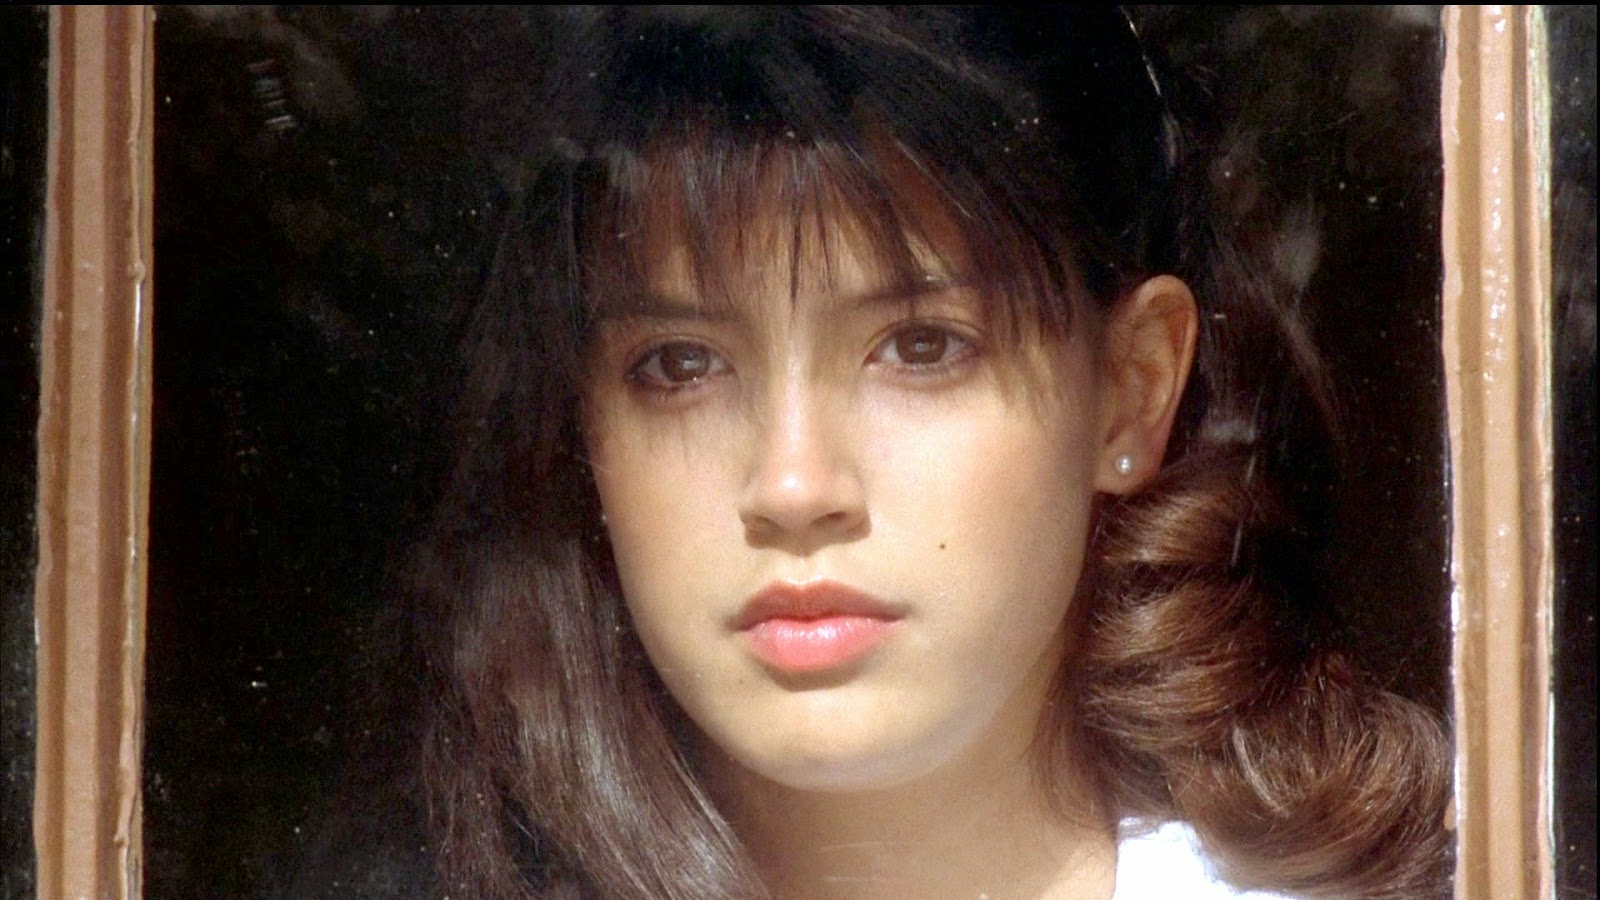 Phoebe Cates Wallpapers hd